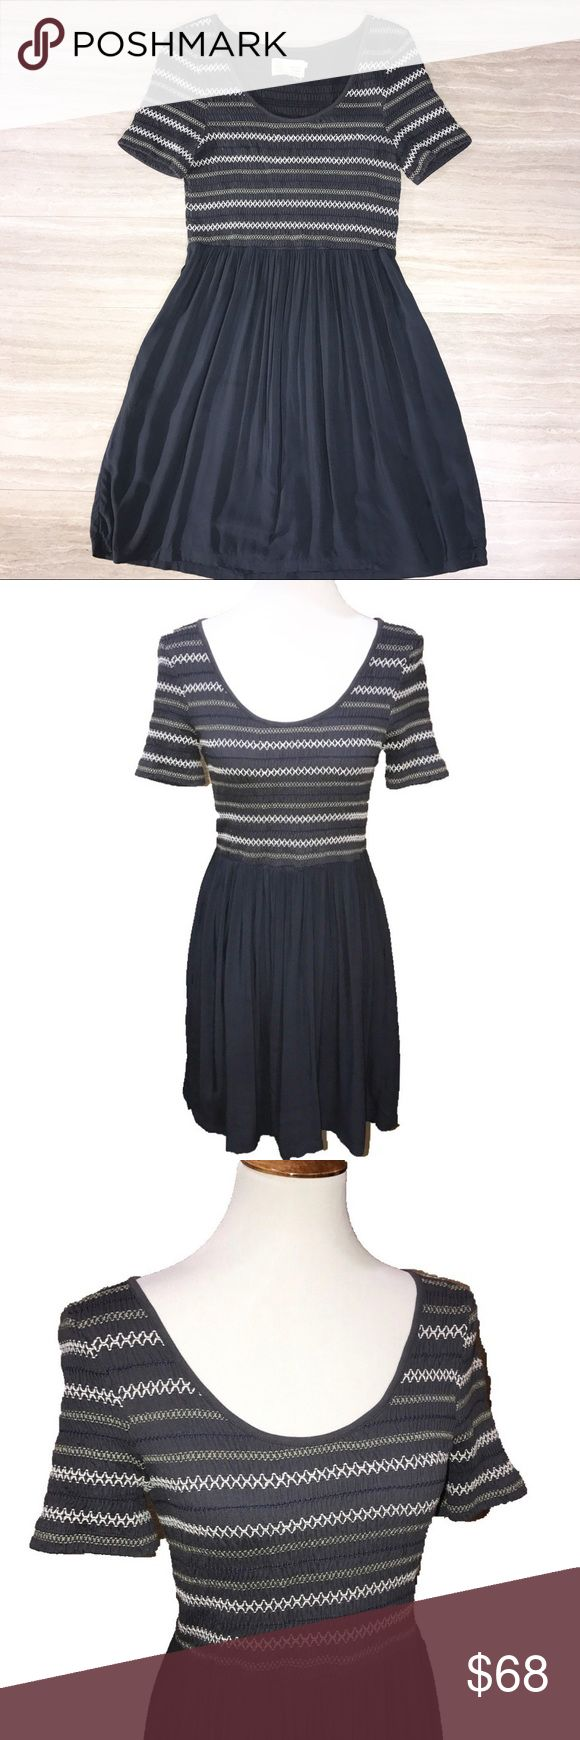 Anthro Saturday Sunday Navy Smocked Fit Flare Anthropologie Saturday Sunday navy blue fit and flare dress. Stretch to fit zig zag stitched smocked top with a flowing swing skirt, hidden side pockets. Anthropologie Dresses Midi